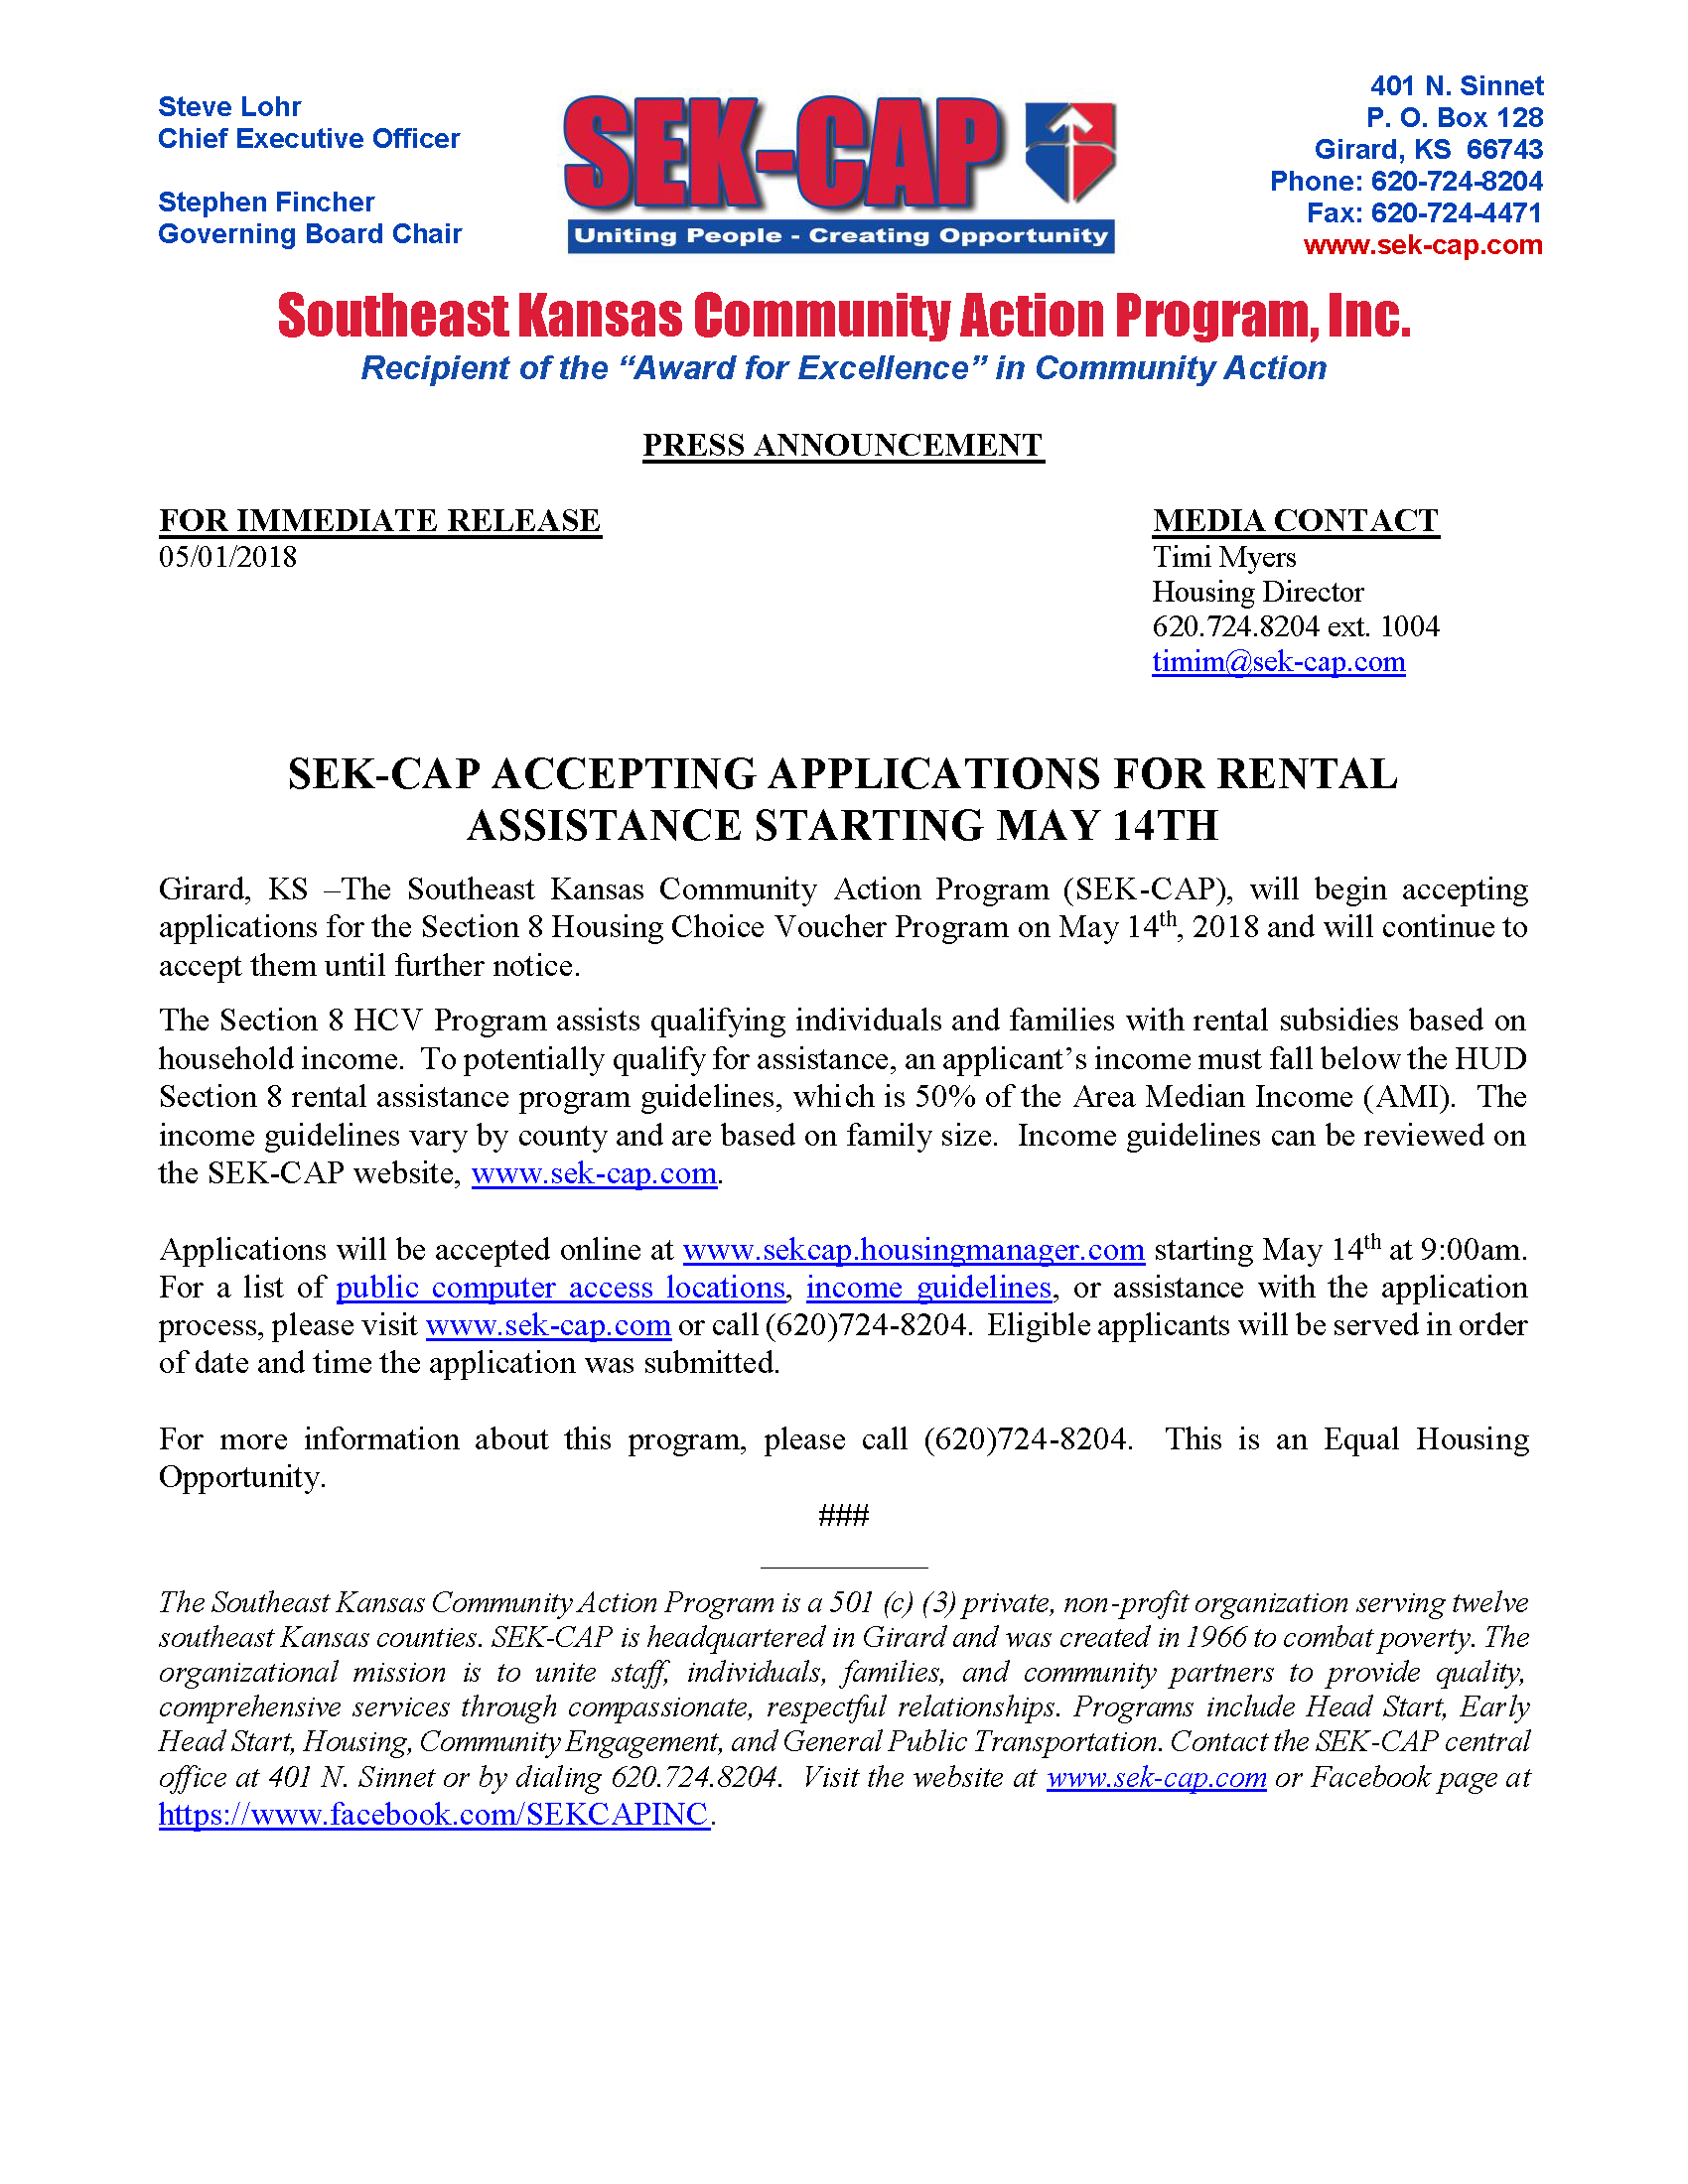 SEK-CAP Accepting Applications For Rental Assistance Starting May 14th 62ca3015ae8